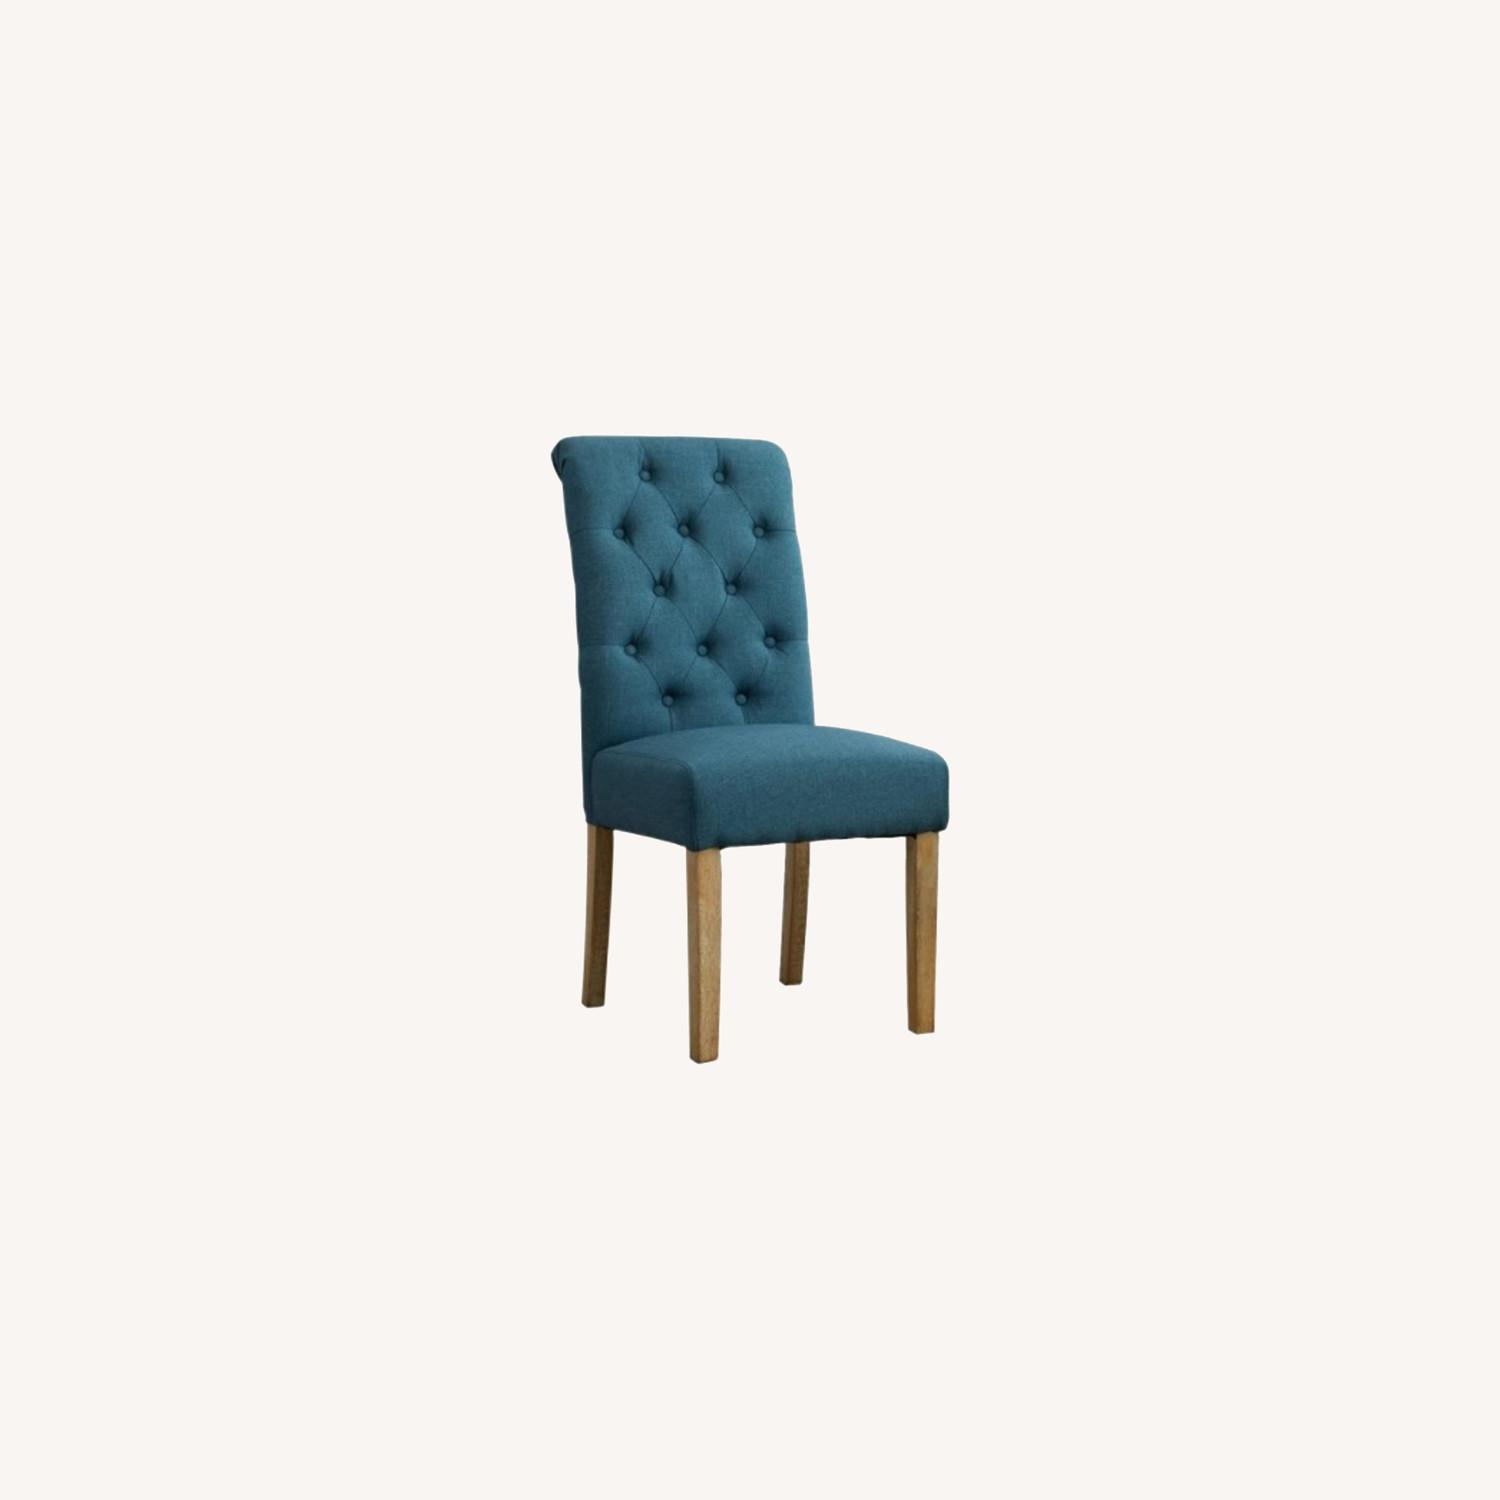 Round Hill Furniture Blue Dining Chairs - image-0